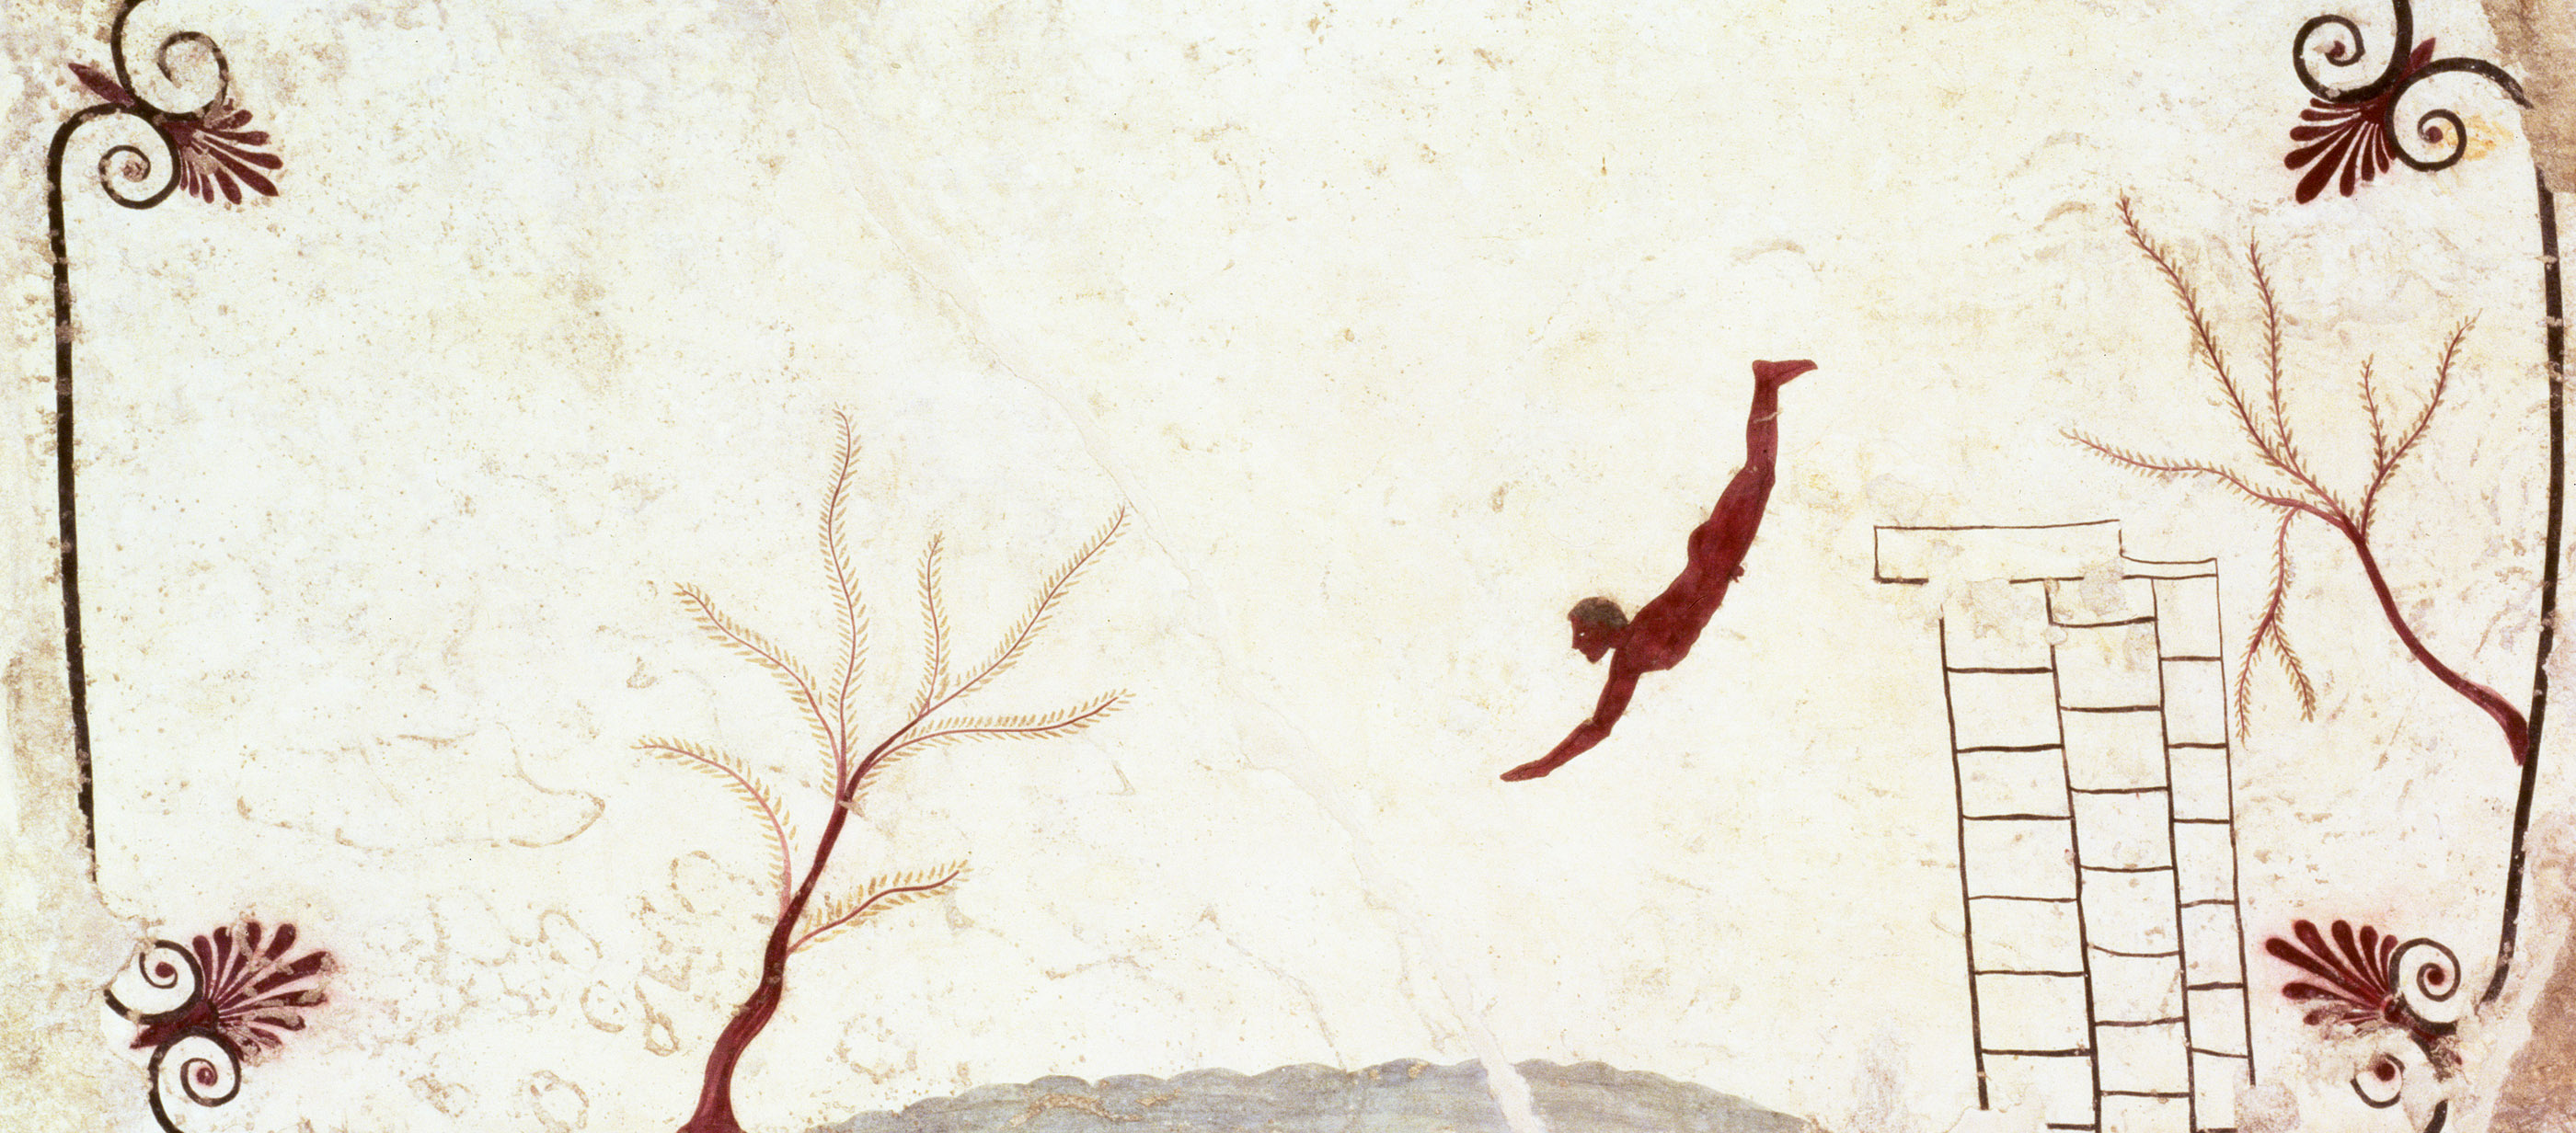 Fresco from the Tomb of the Diver, southern Italy, c. 475 BC. National Archaeological Museum of Paestum, Capaccio, Italy.